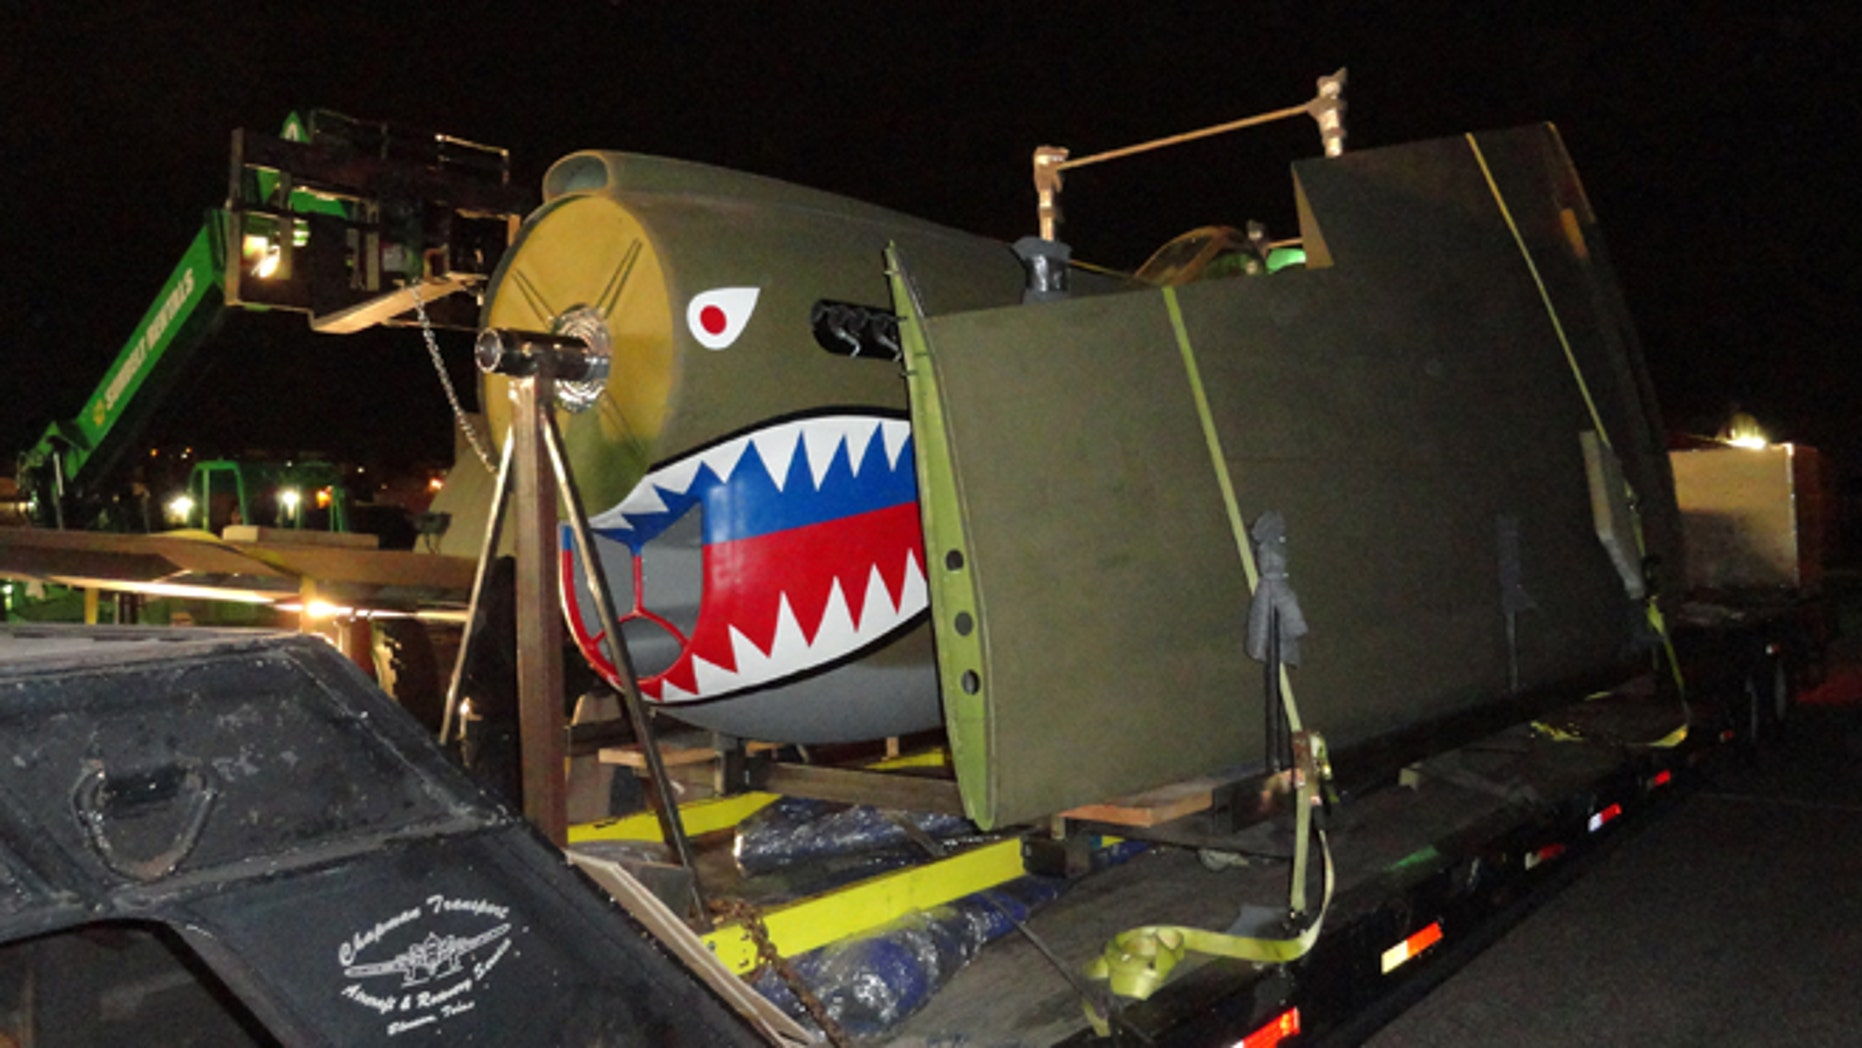 Jan. 21, 2014: In this photo made available by Rolando Gutierrez shows a Curtis P-40 Warhawk fighter plane as it is loaded for transport in San Diego, Calif. The warplane is bound for the World War II Museum in New Orleans, LA. The P-40E is the model flown by the 1st American Volunteer Group during World War II. It was immortalized in military lore in a John Wayne film.